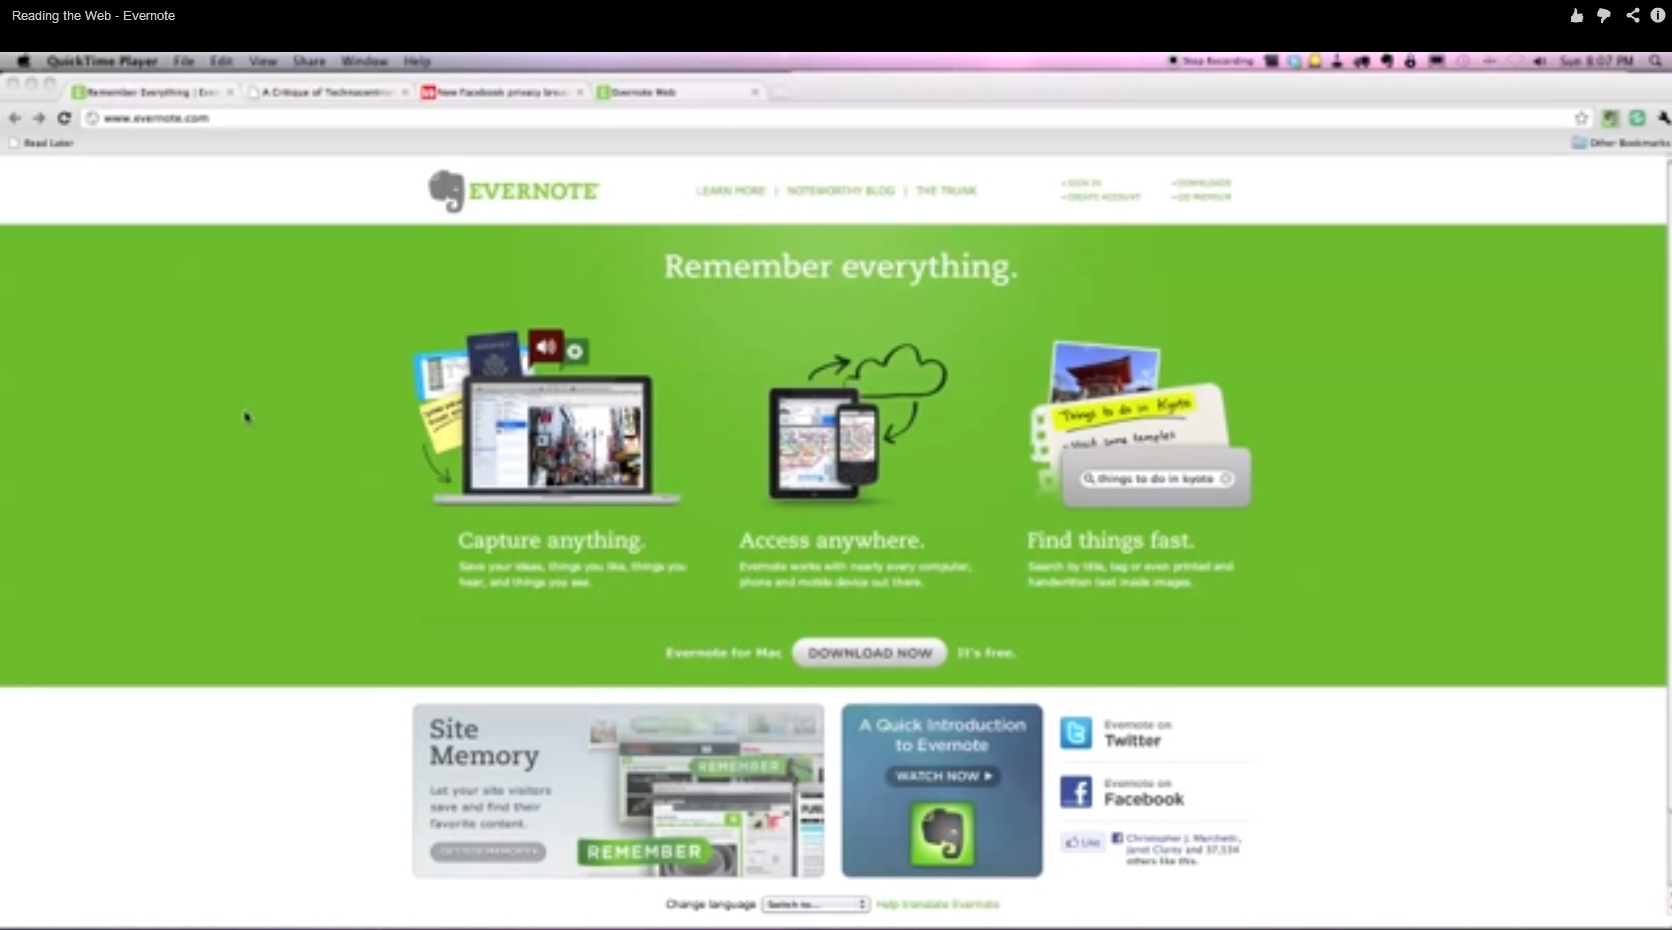 Reading the Web - Evernote